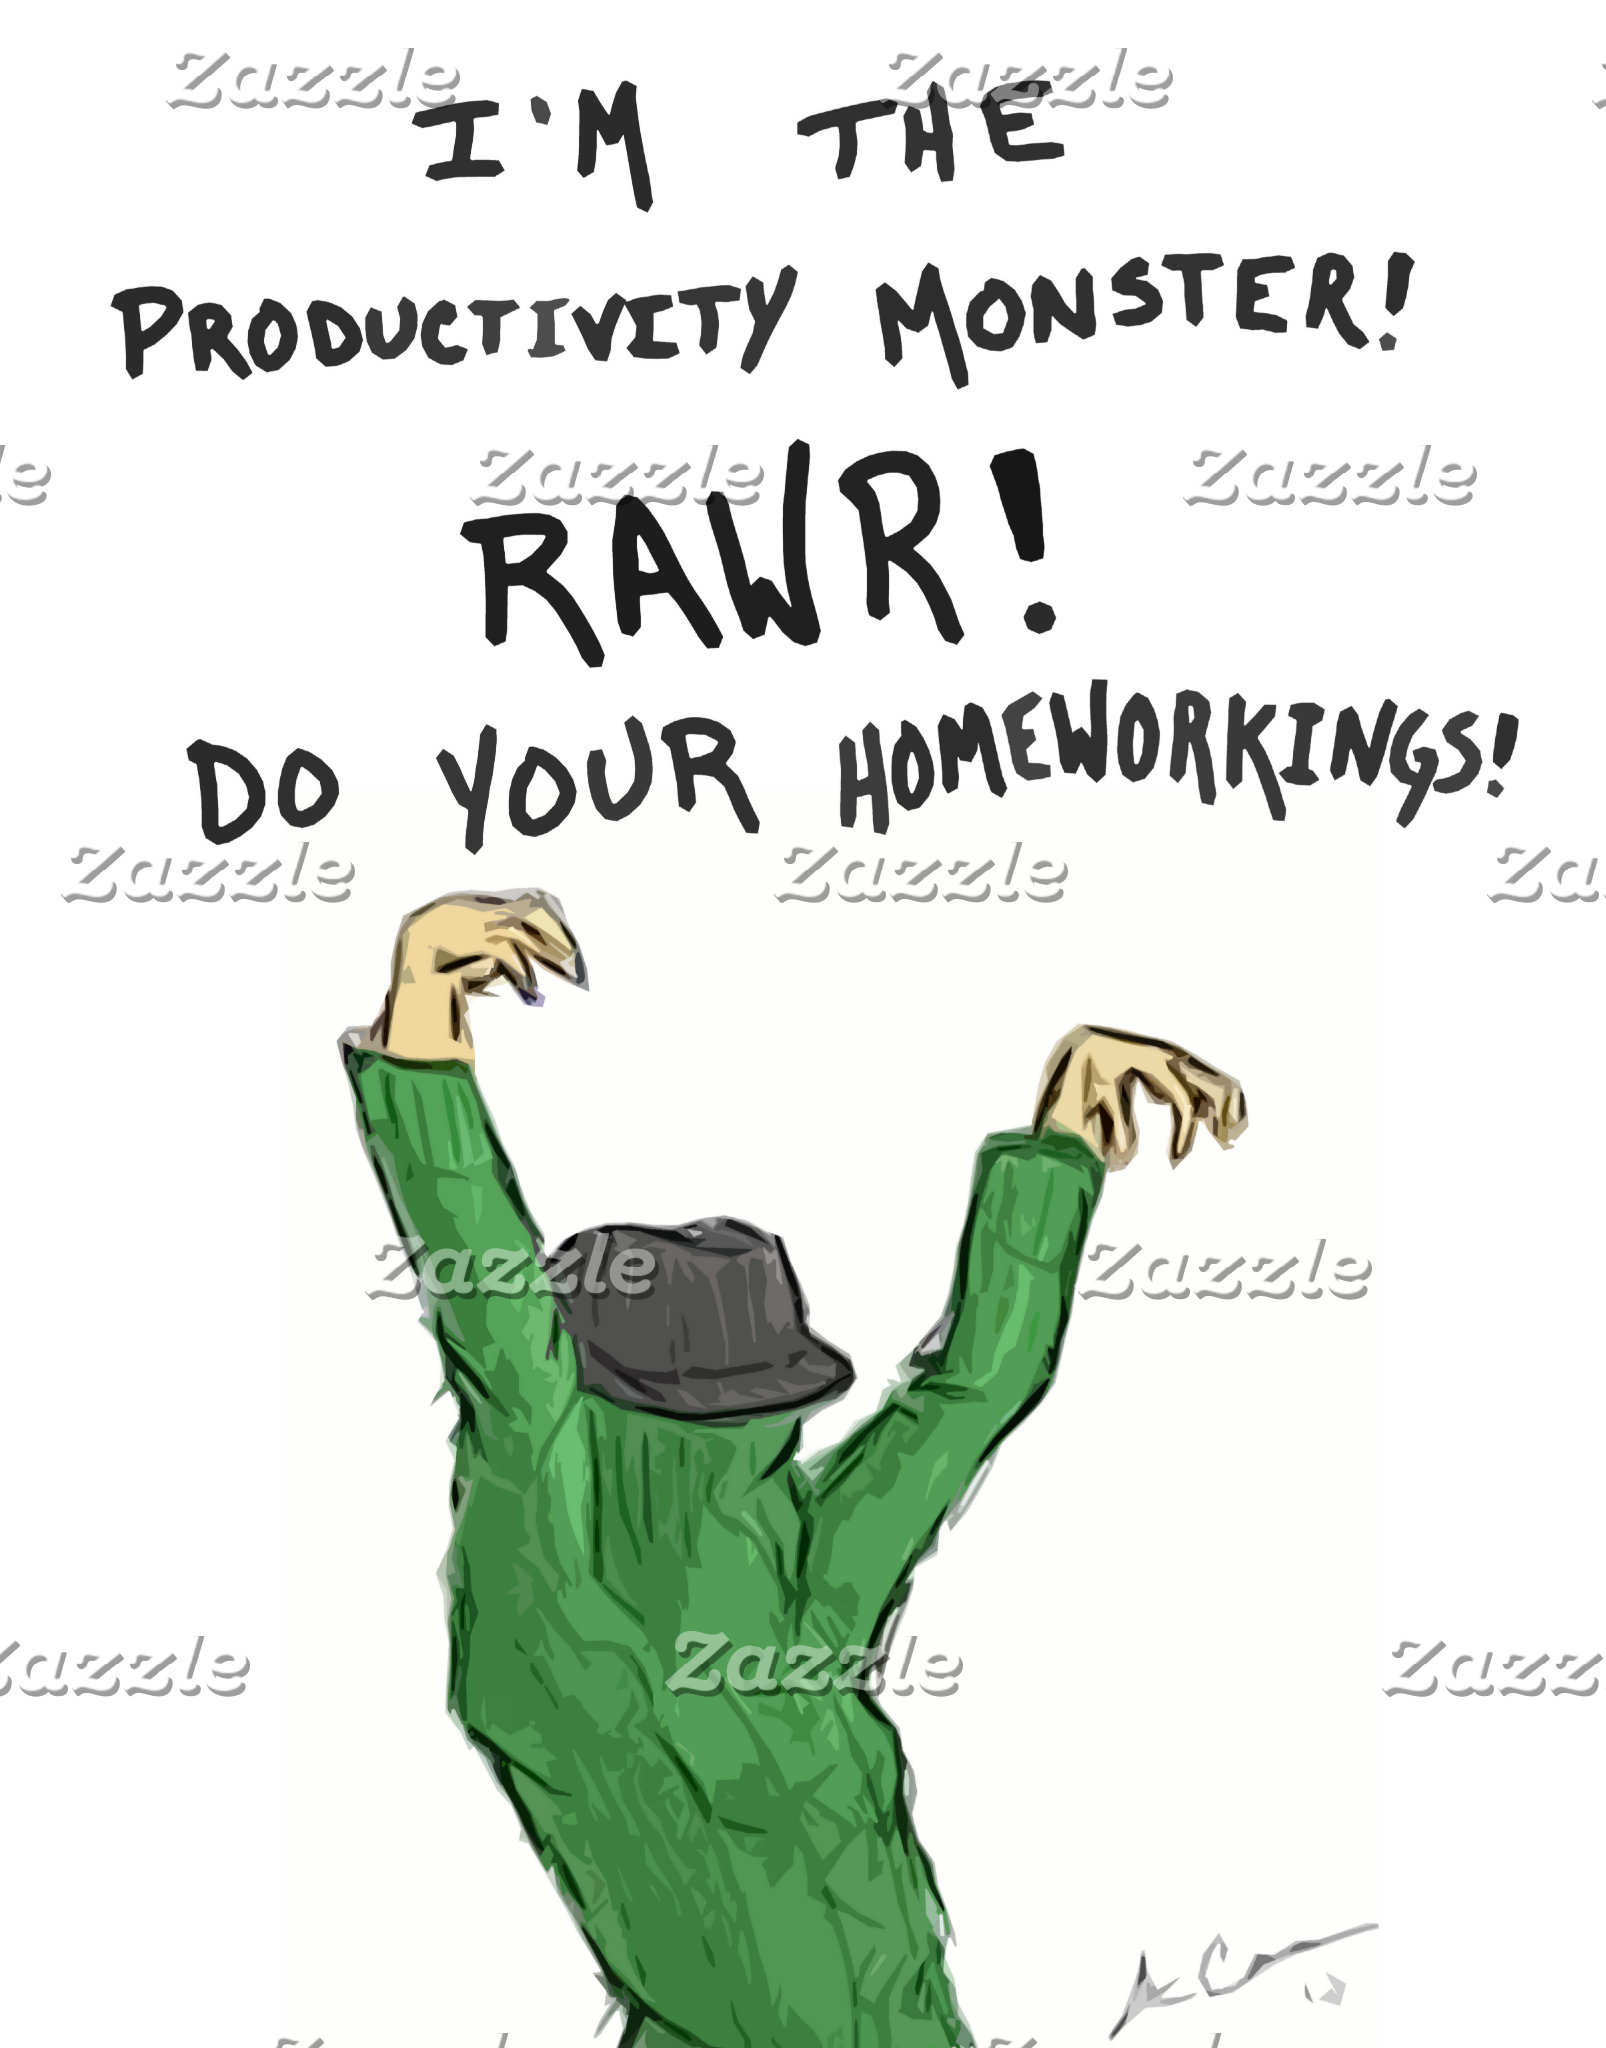 Productivity Monster